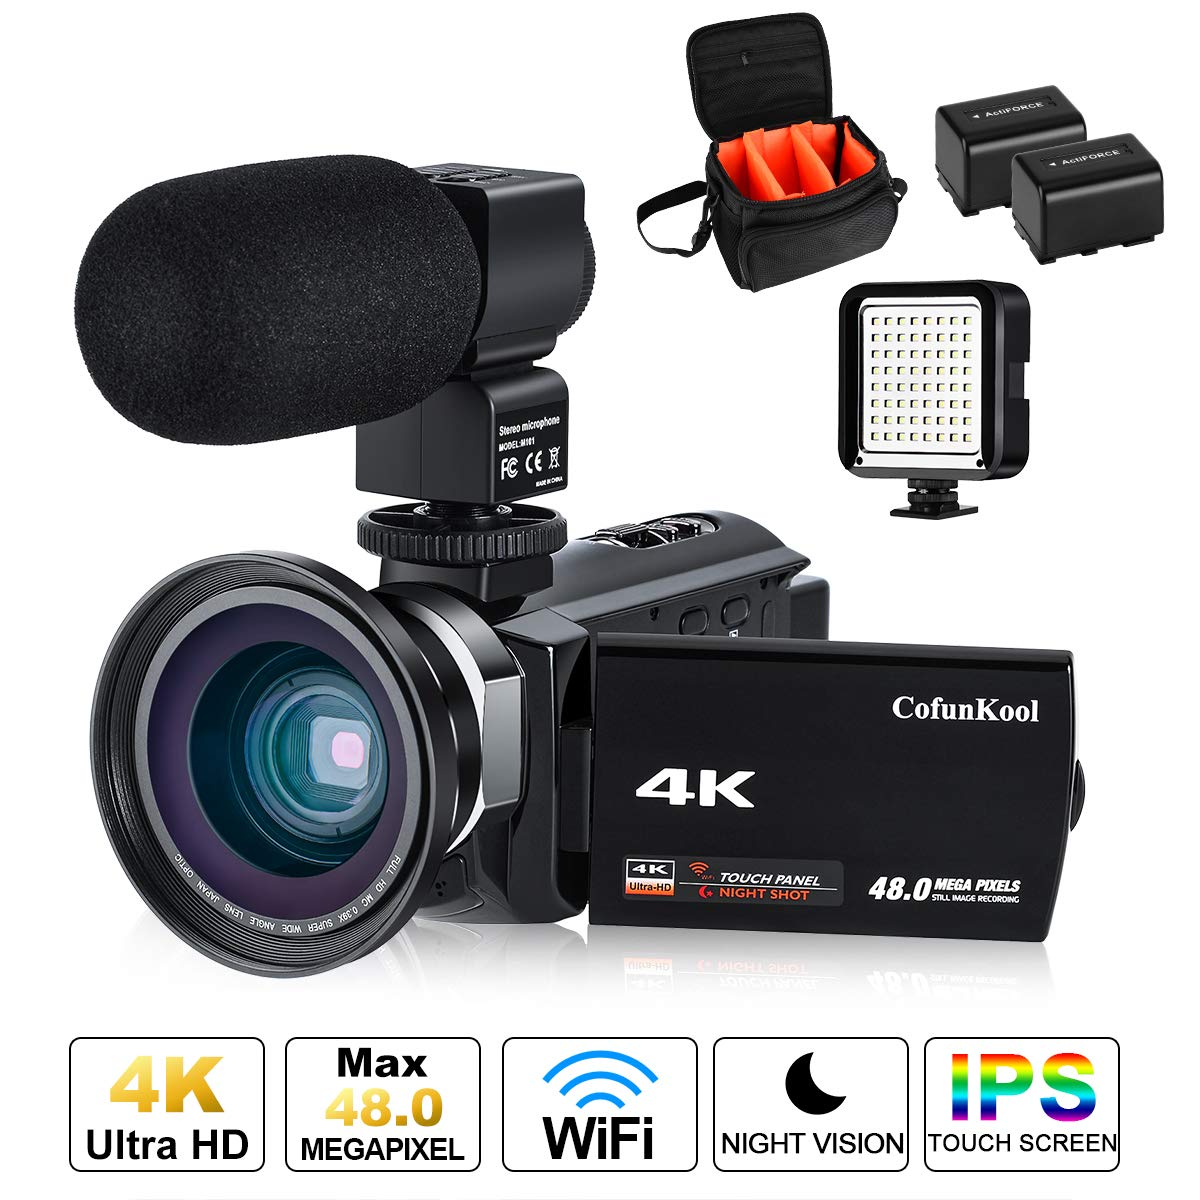 2476a7e49da4 4K Camcorder Vlogging Video Camera for YouTube CofunKool 60FPS 48MP Ultra  HD WiFi Night Vision 16X Digital Zoom with External Microphone Wide Angle  Lens LED ...